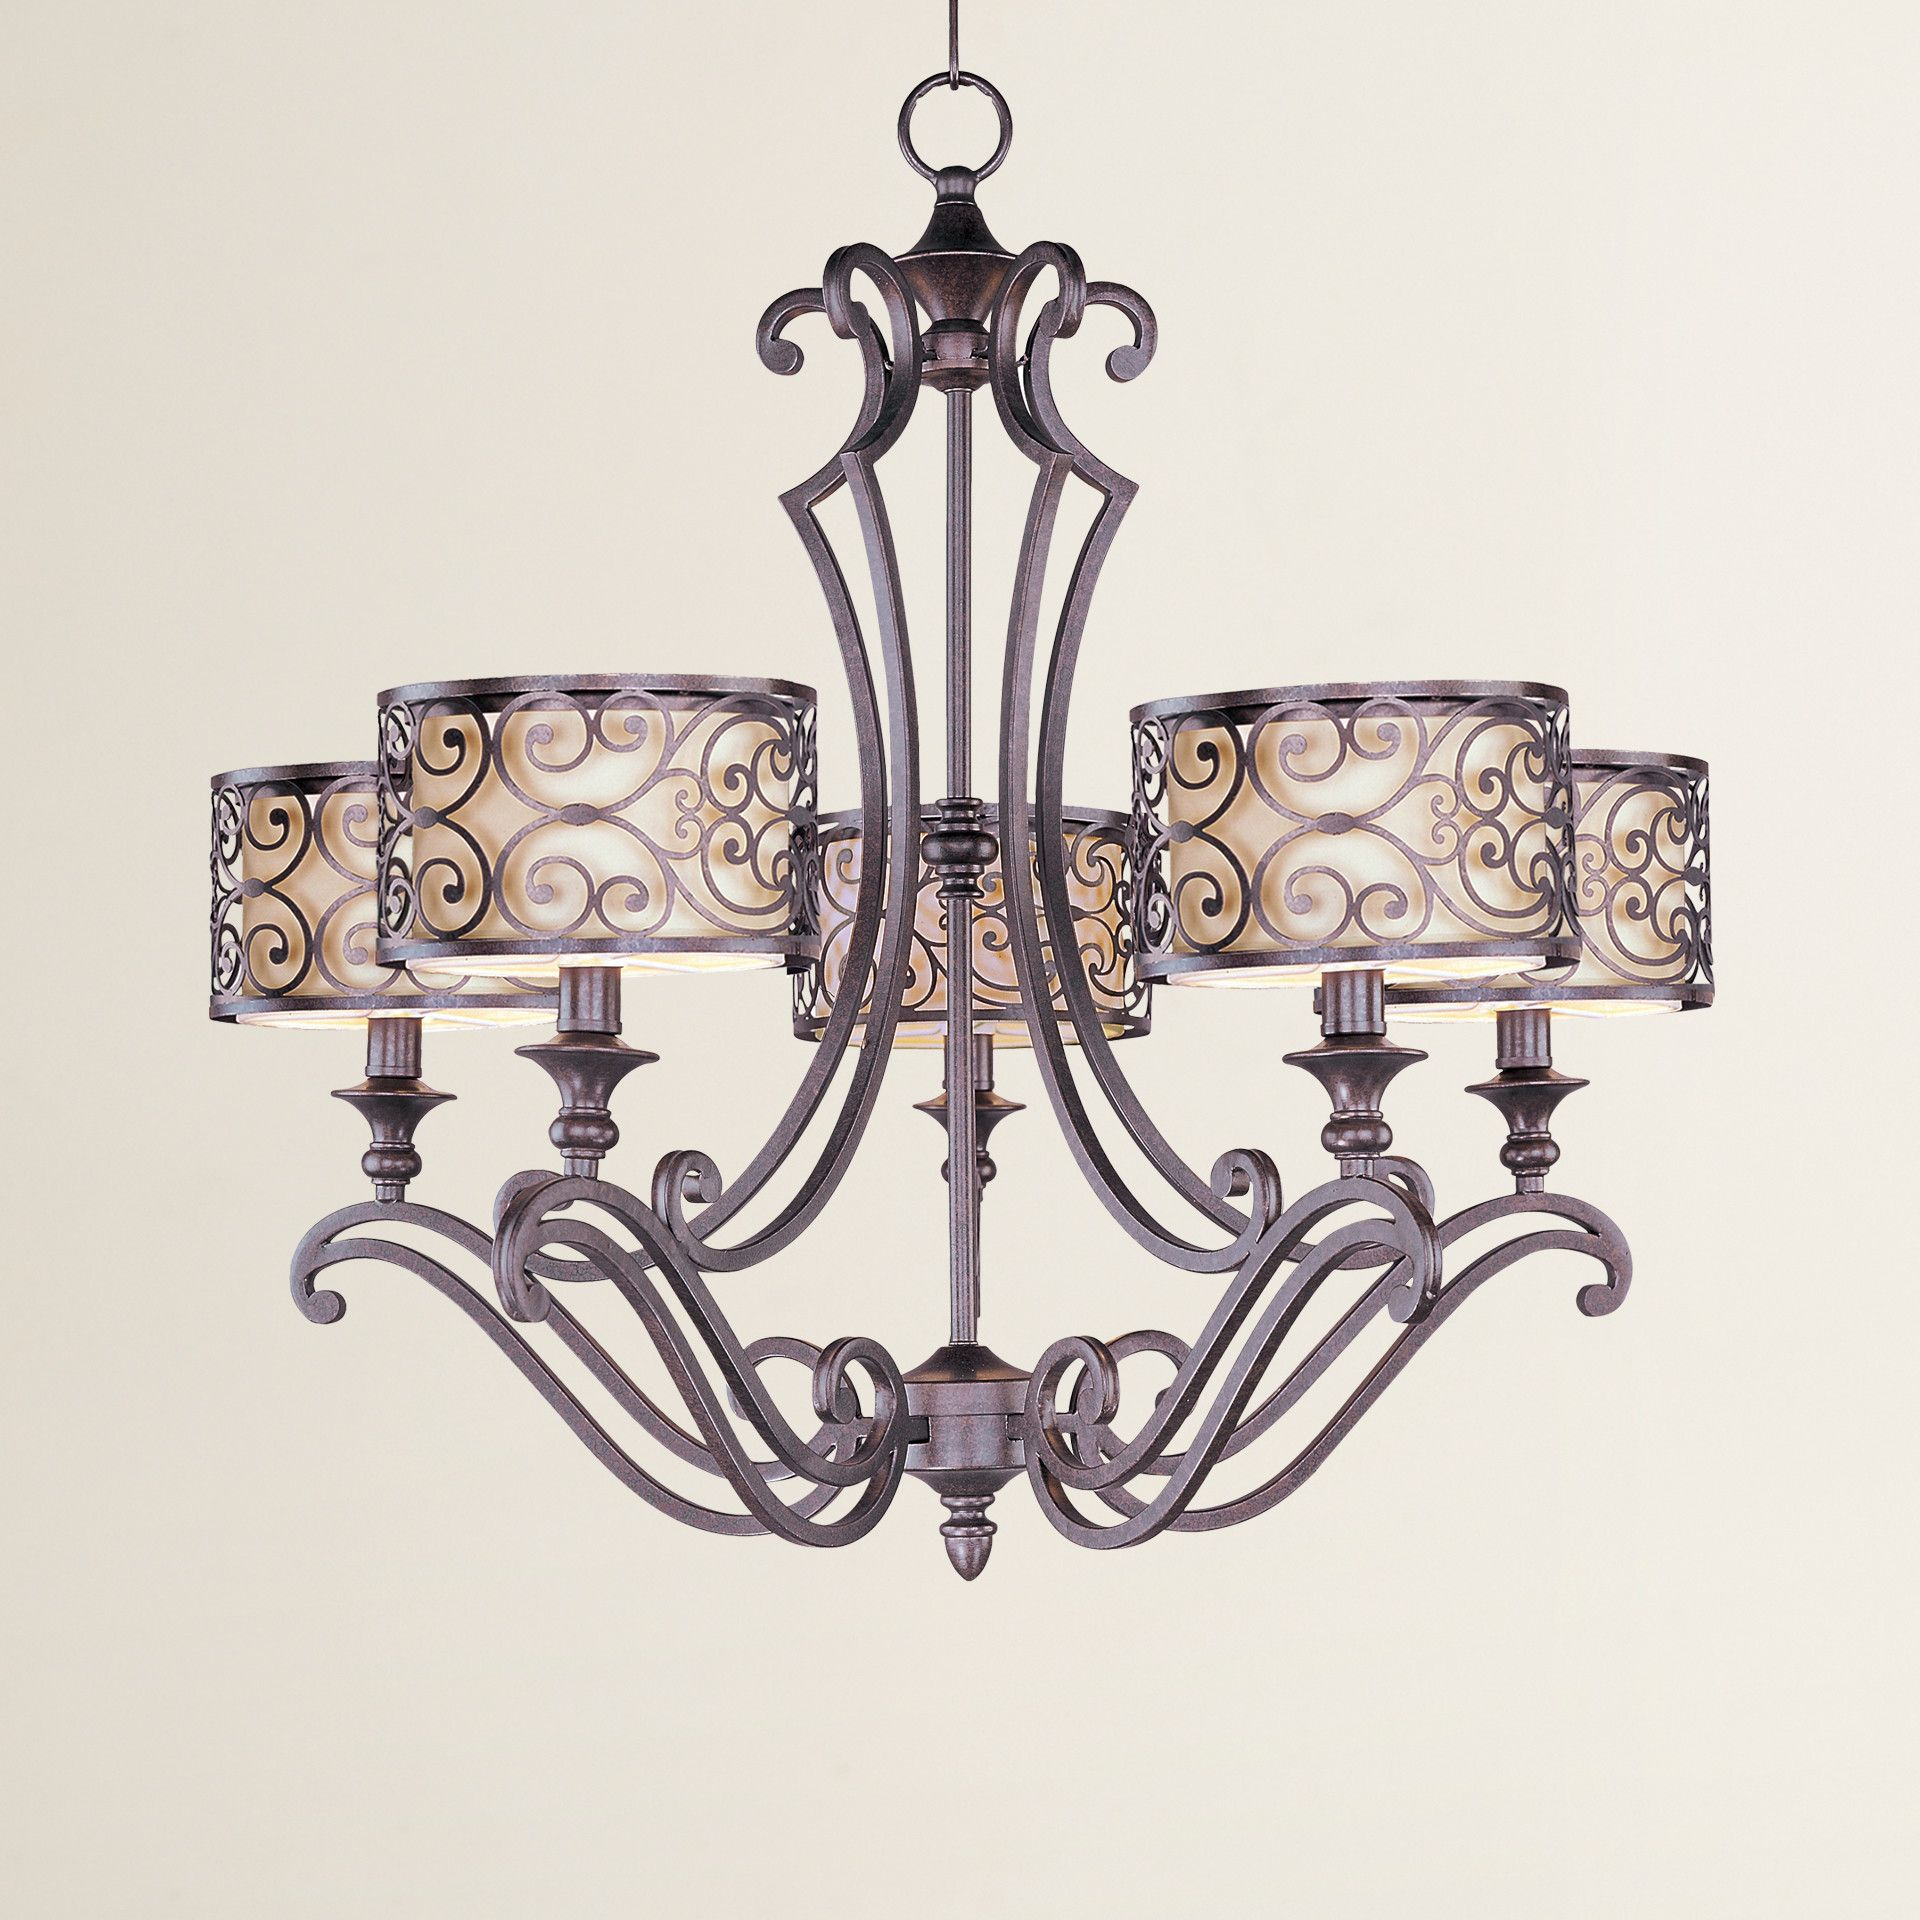 Nicole 5 Light Chandelier | Products | Chandelier Lighting In Newent 5 Light Shaded Chandeliers (View 13 of 30)